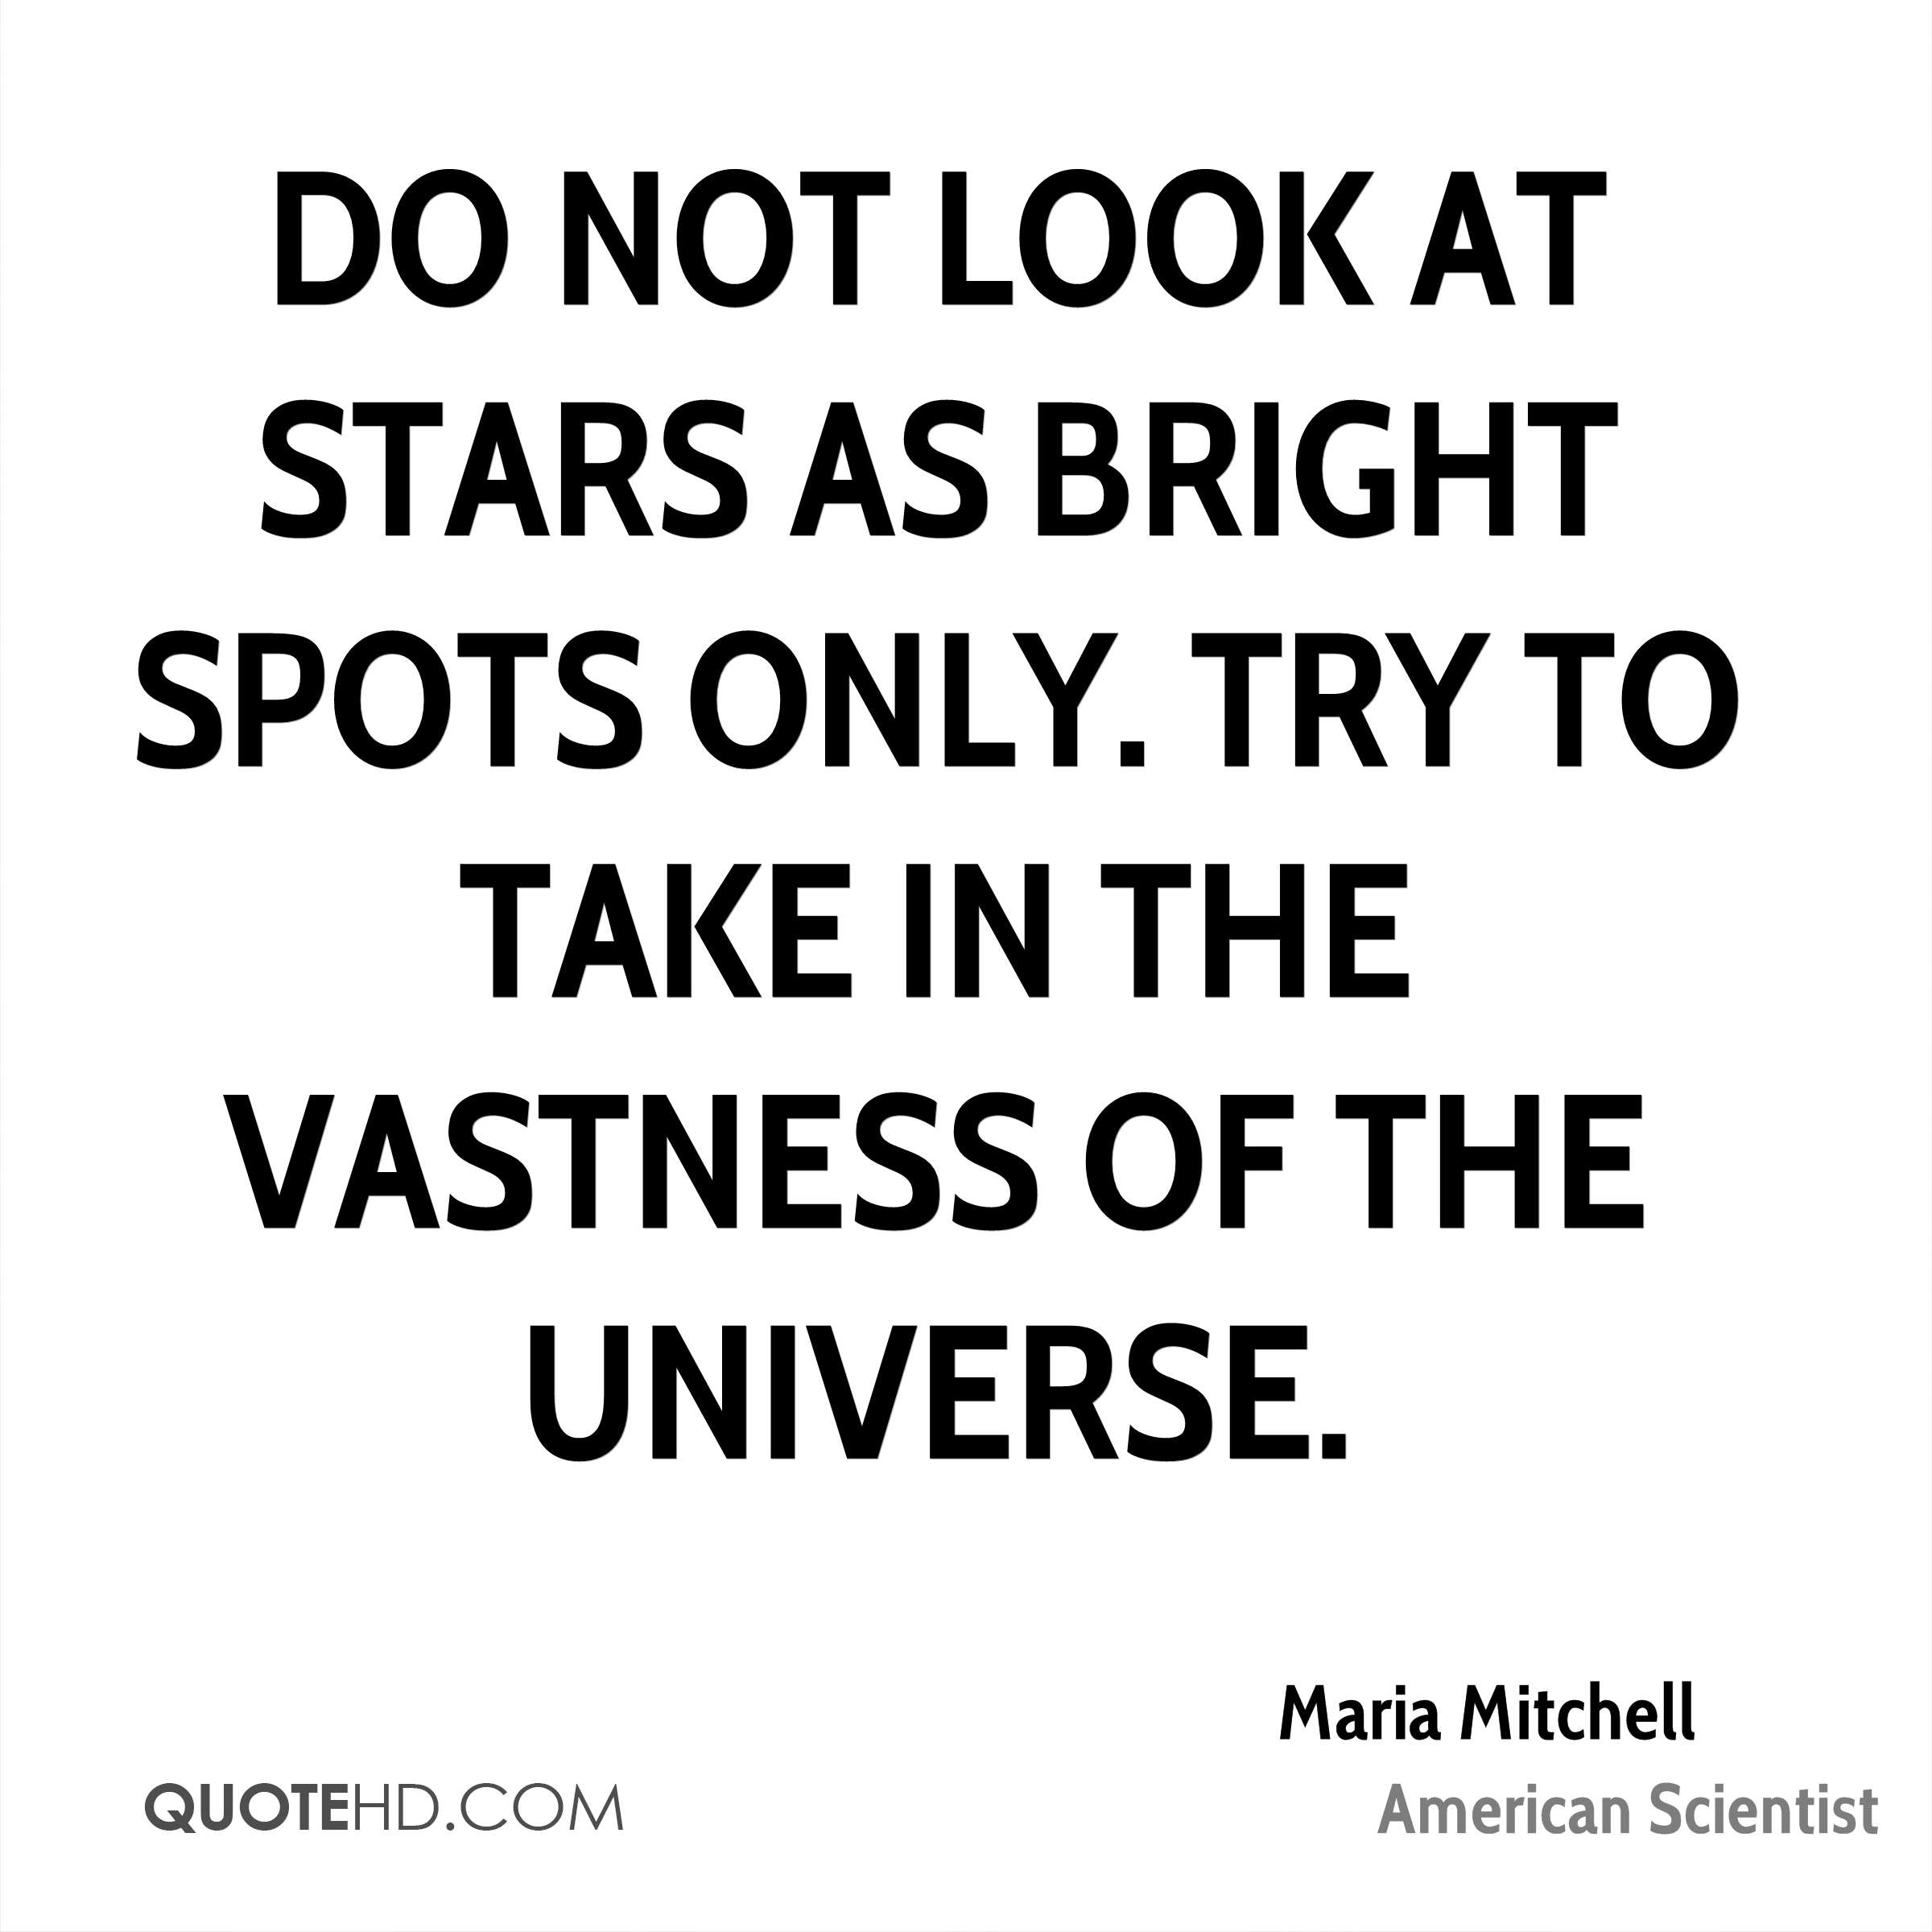 Do not look at stars as bright spots only. Try to take in the vastness of the universe.